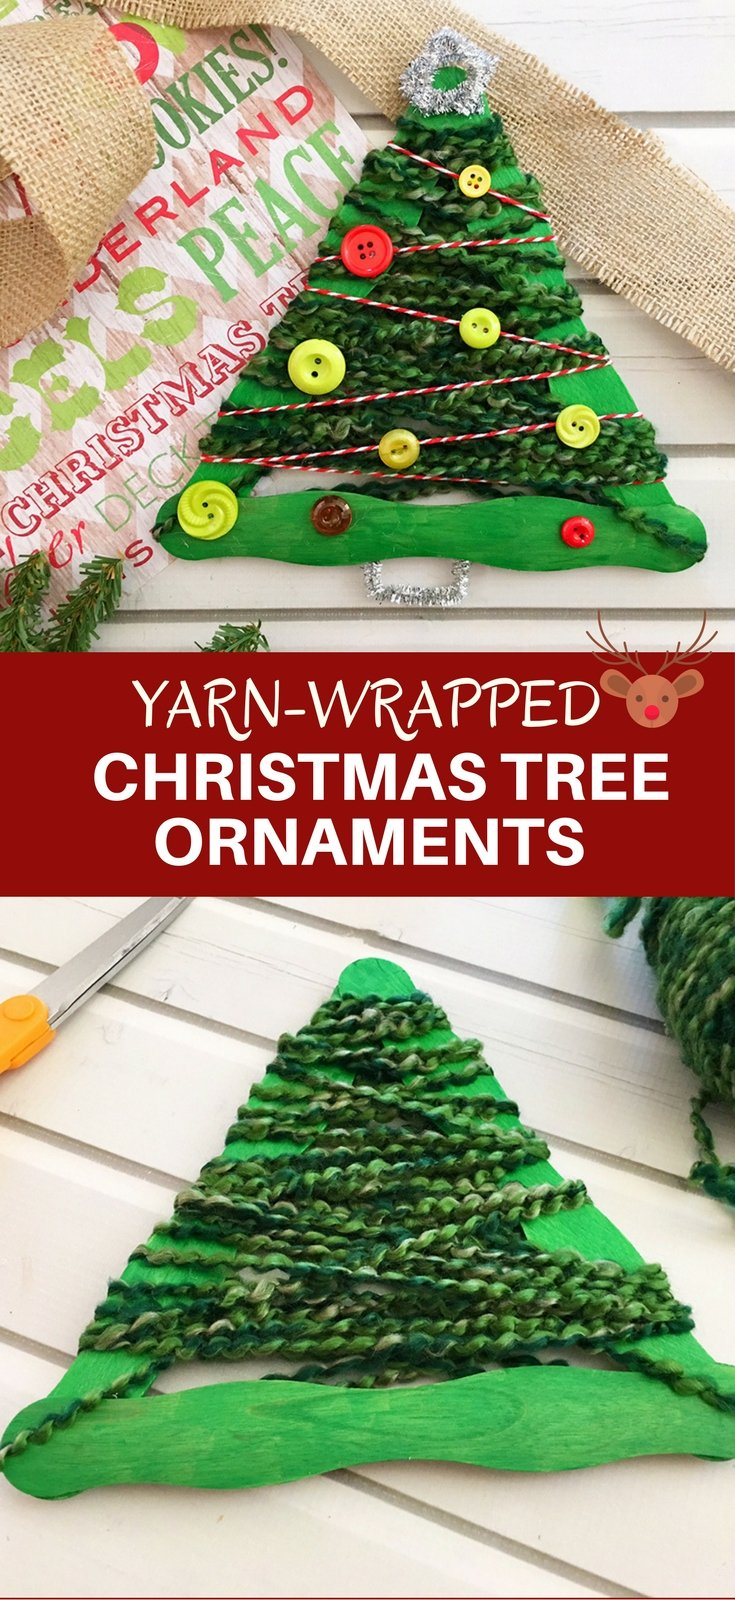 Yarn-Wrapped Christmas Tree Craft Stick Ornaments are a great holiday project for the whole family. They're so easy to make and a festive addition to your Christmas decor!